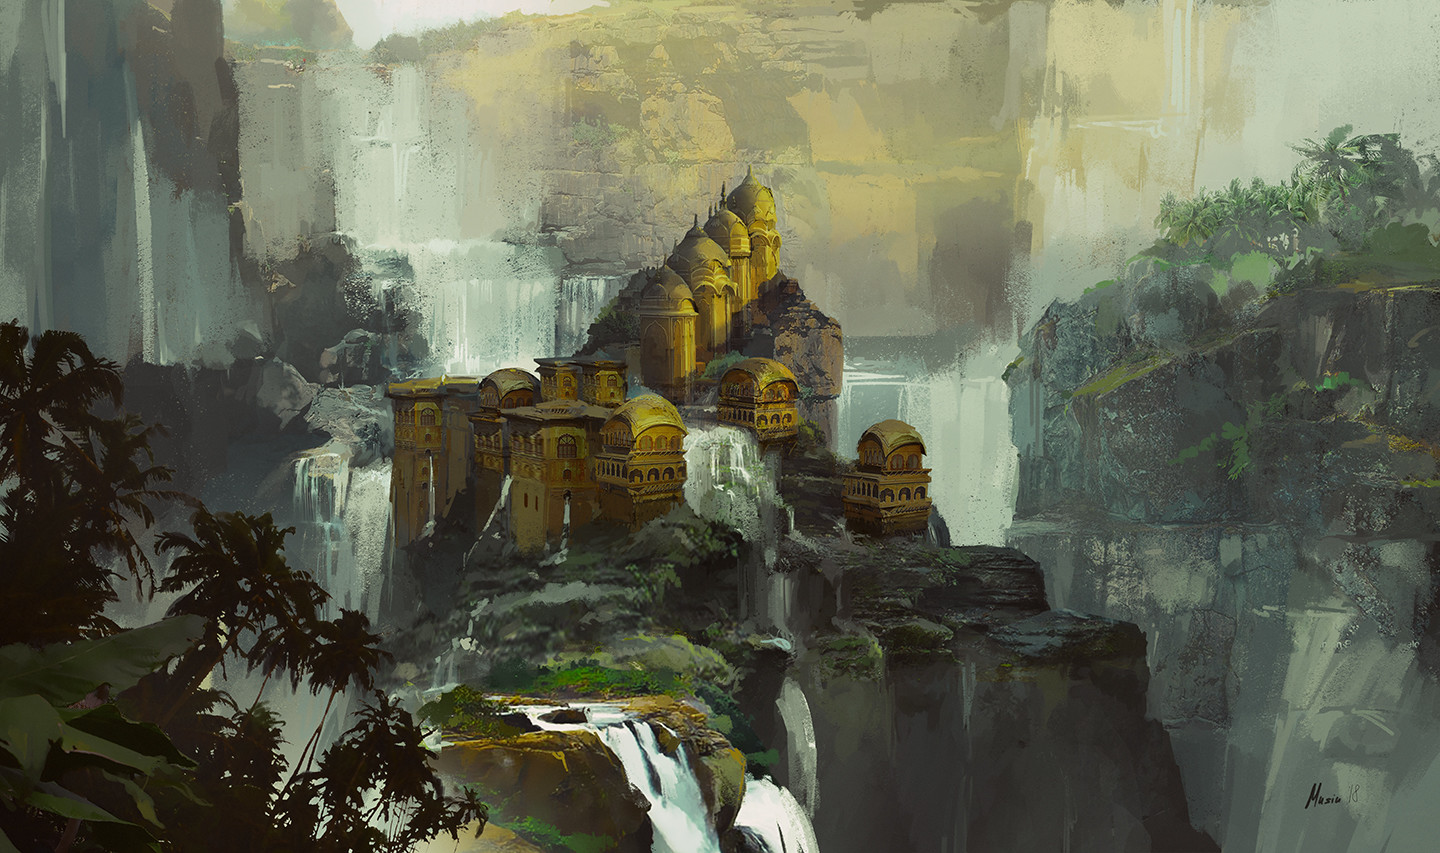 Sergey musin environment sketches15